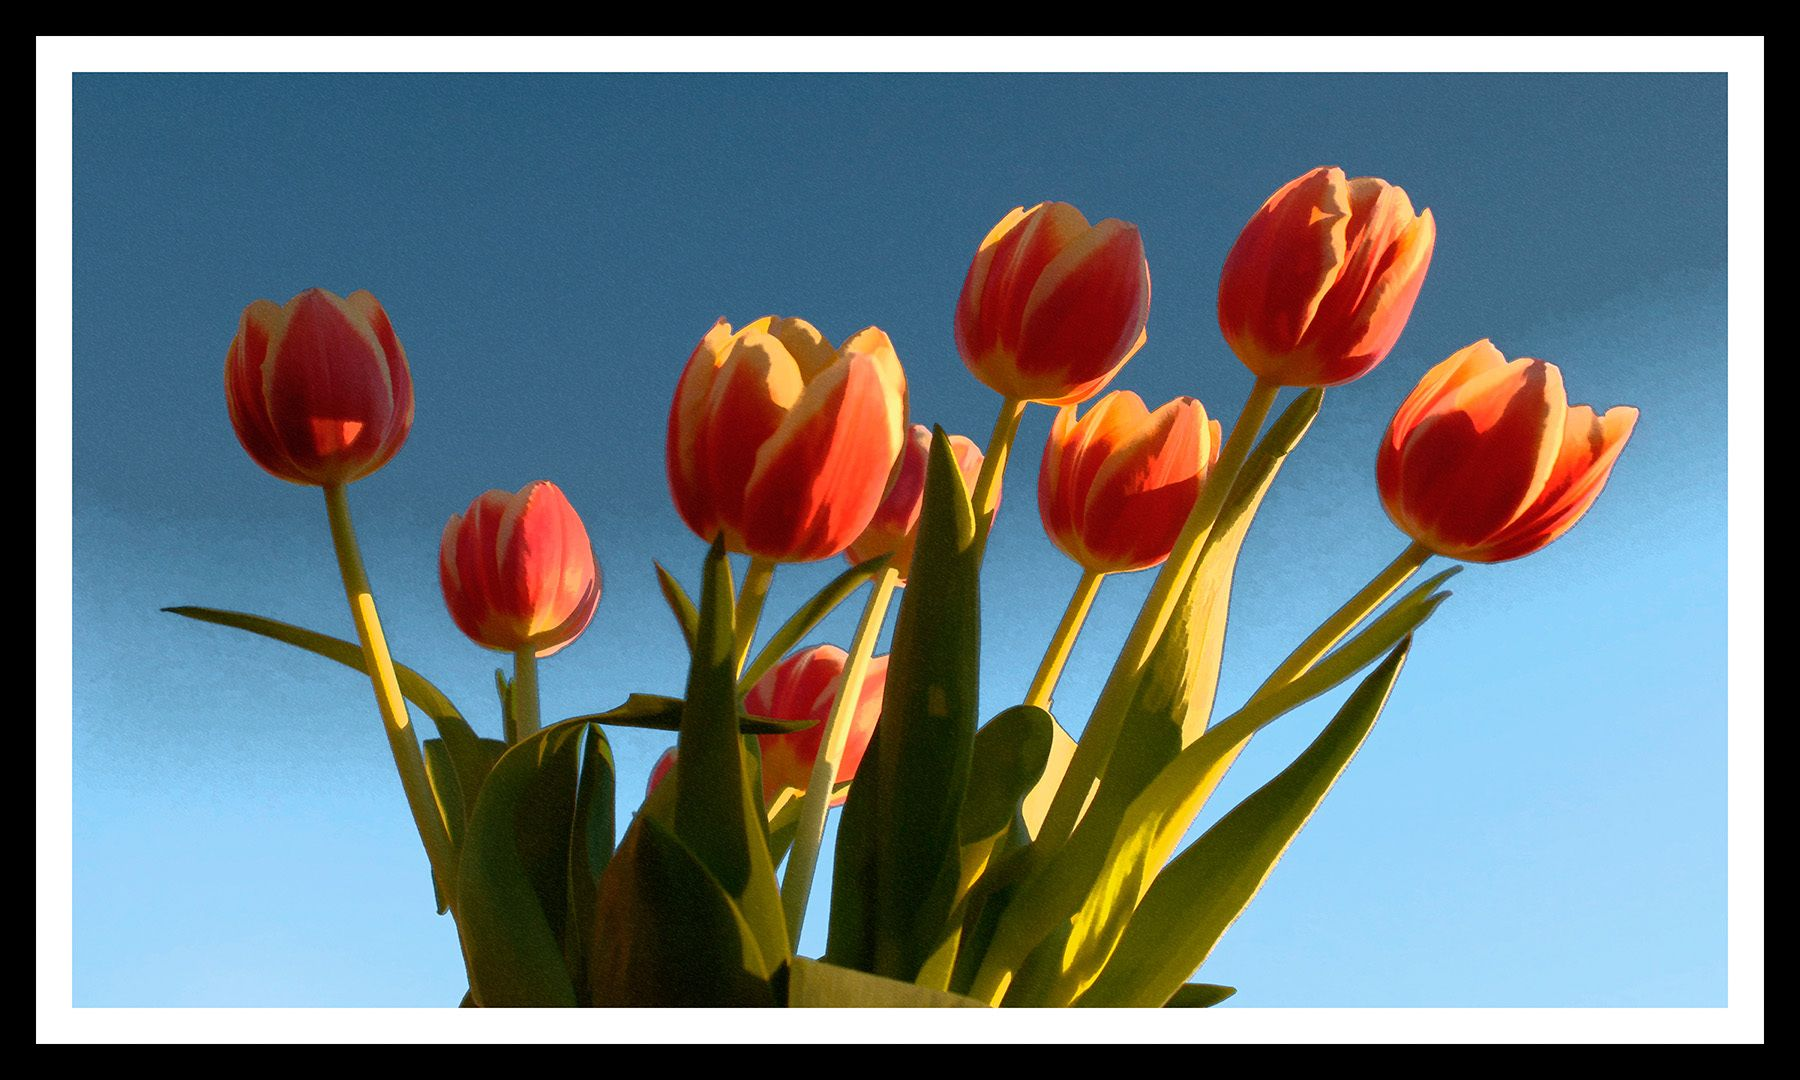 Tulips of April